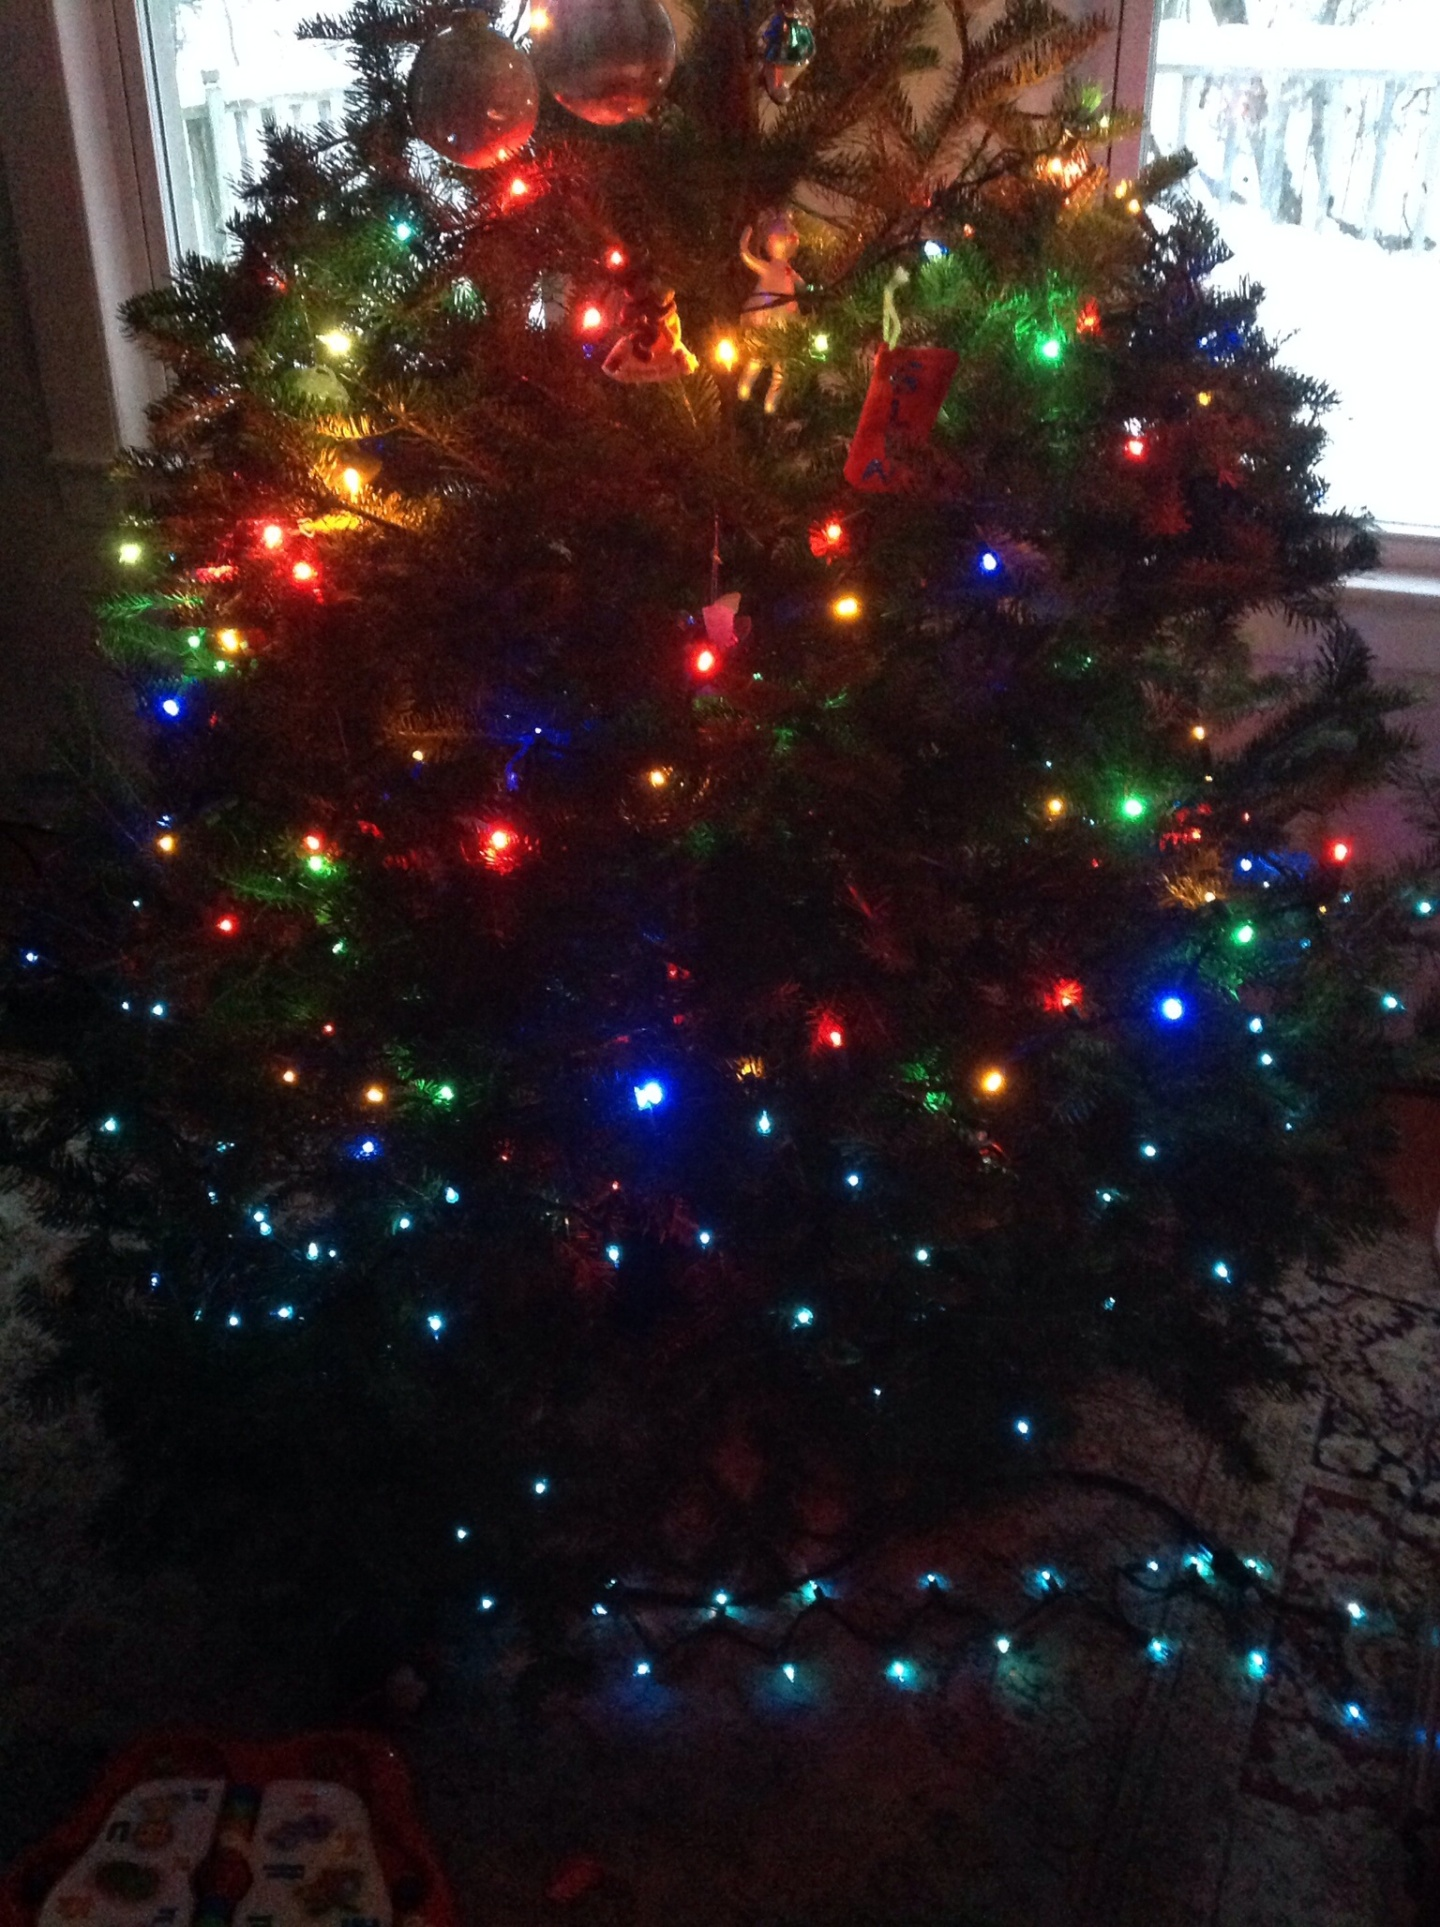 A decorated Christmas tree with colored lights